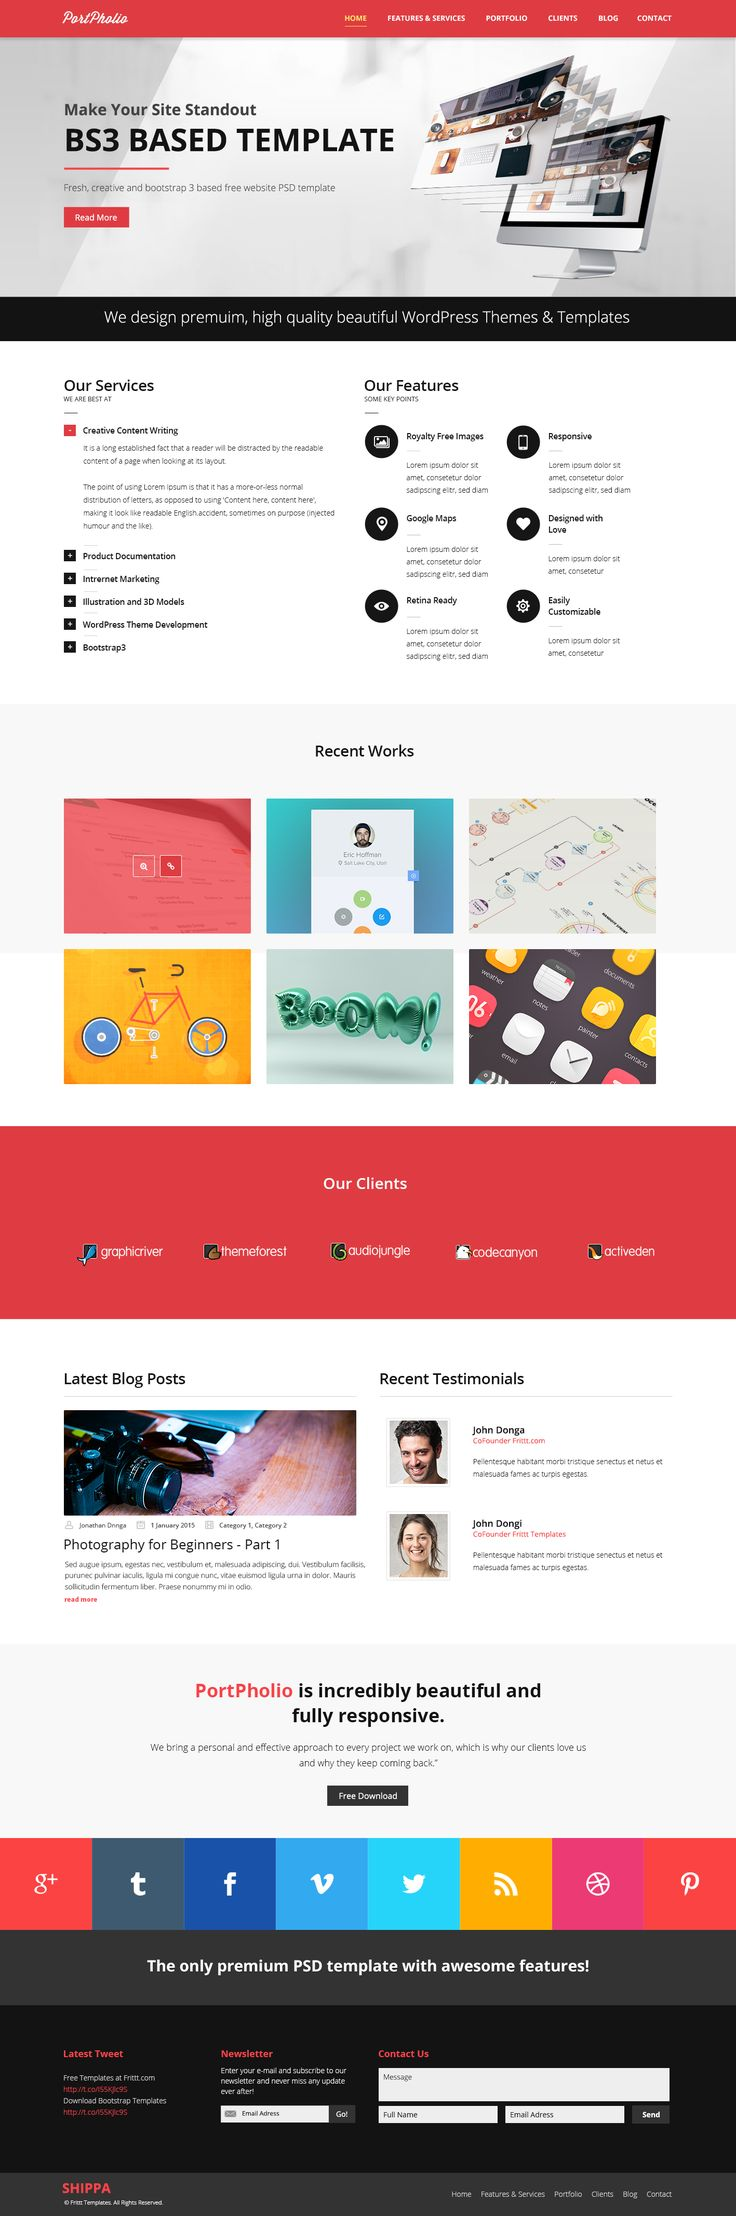 Free template site rencontre